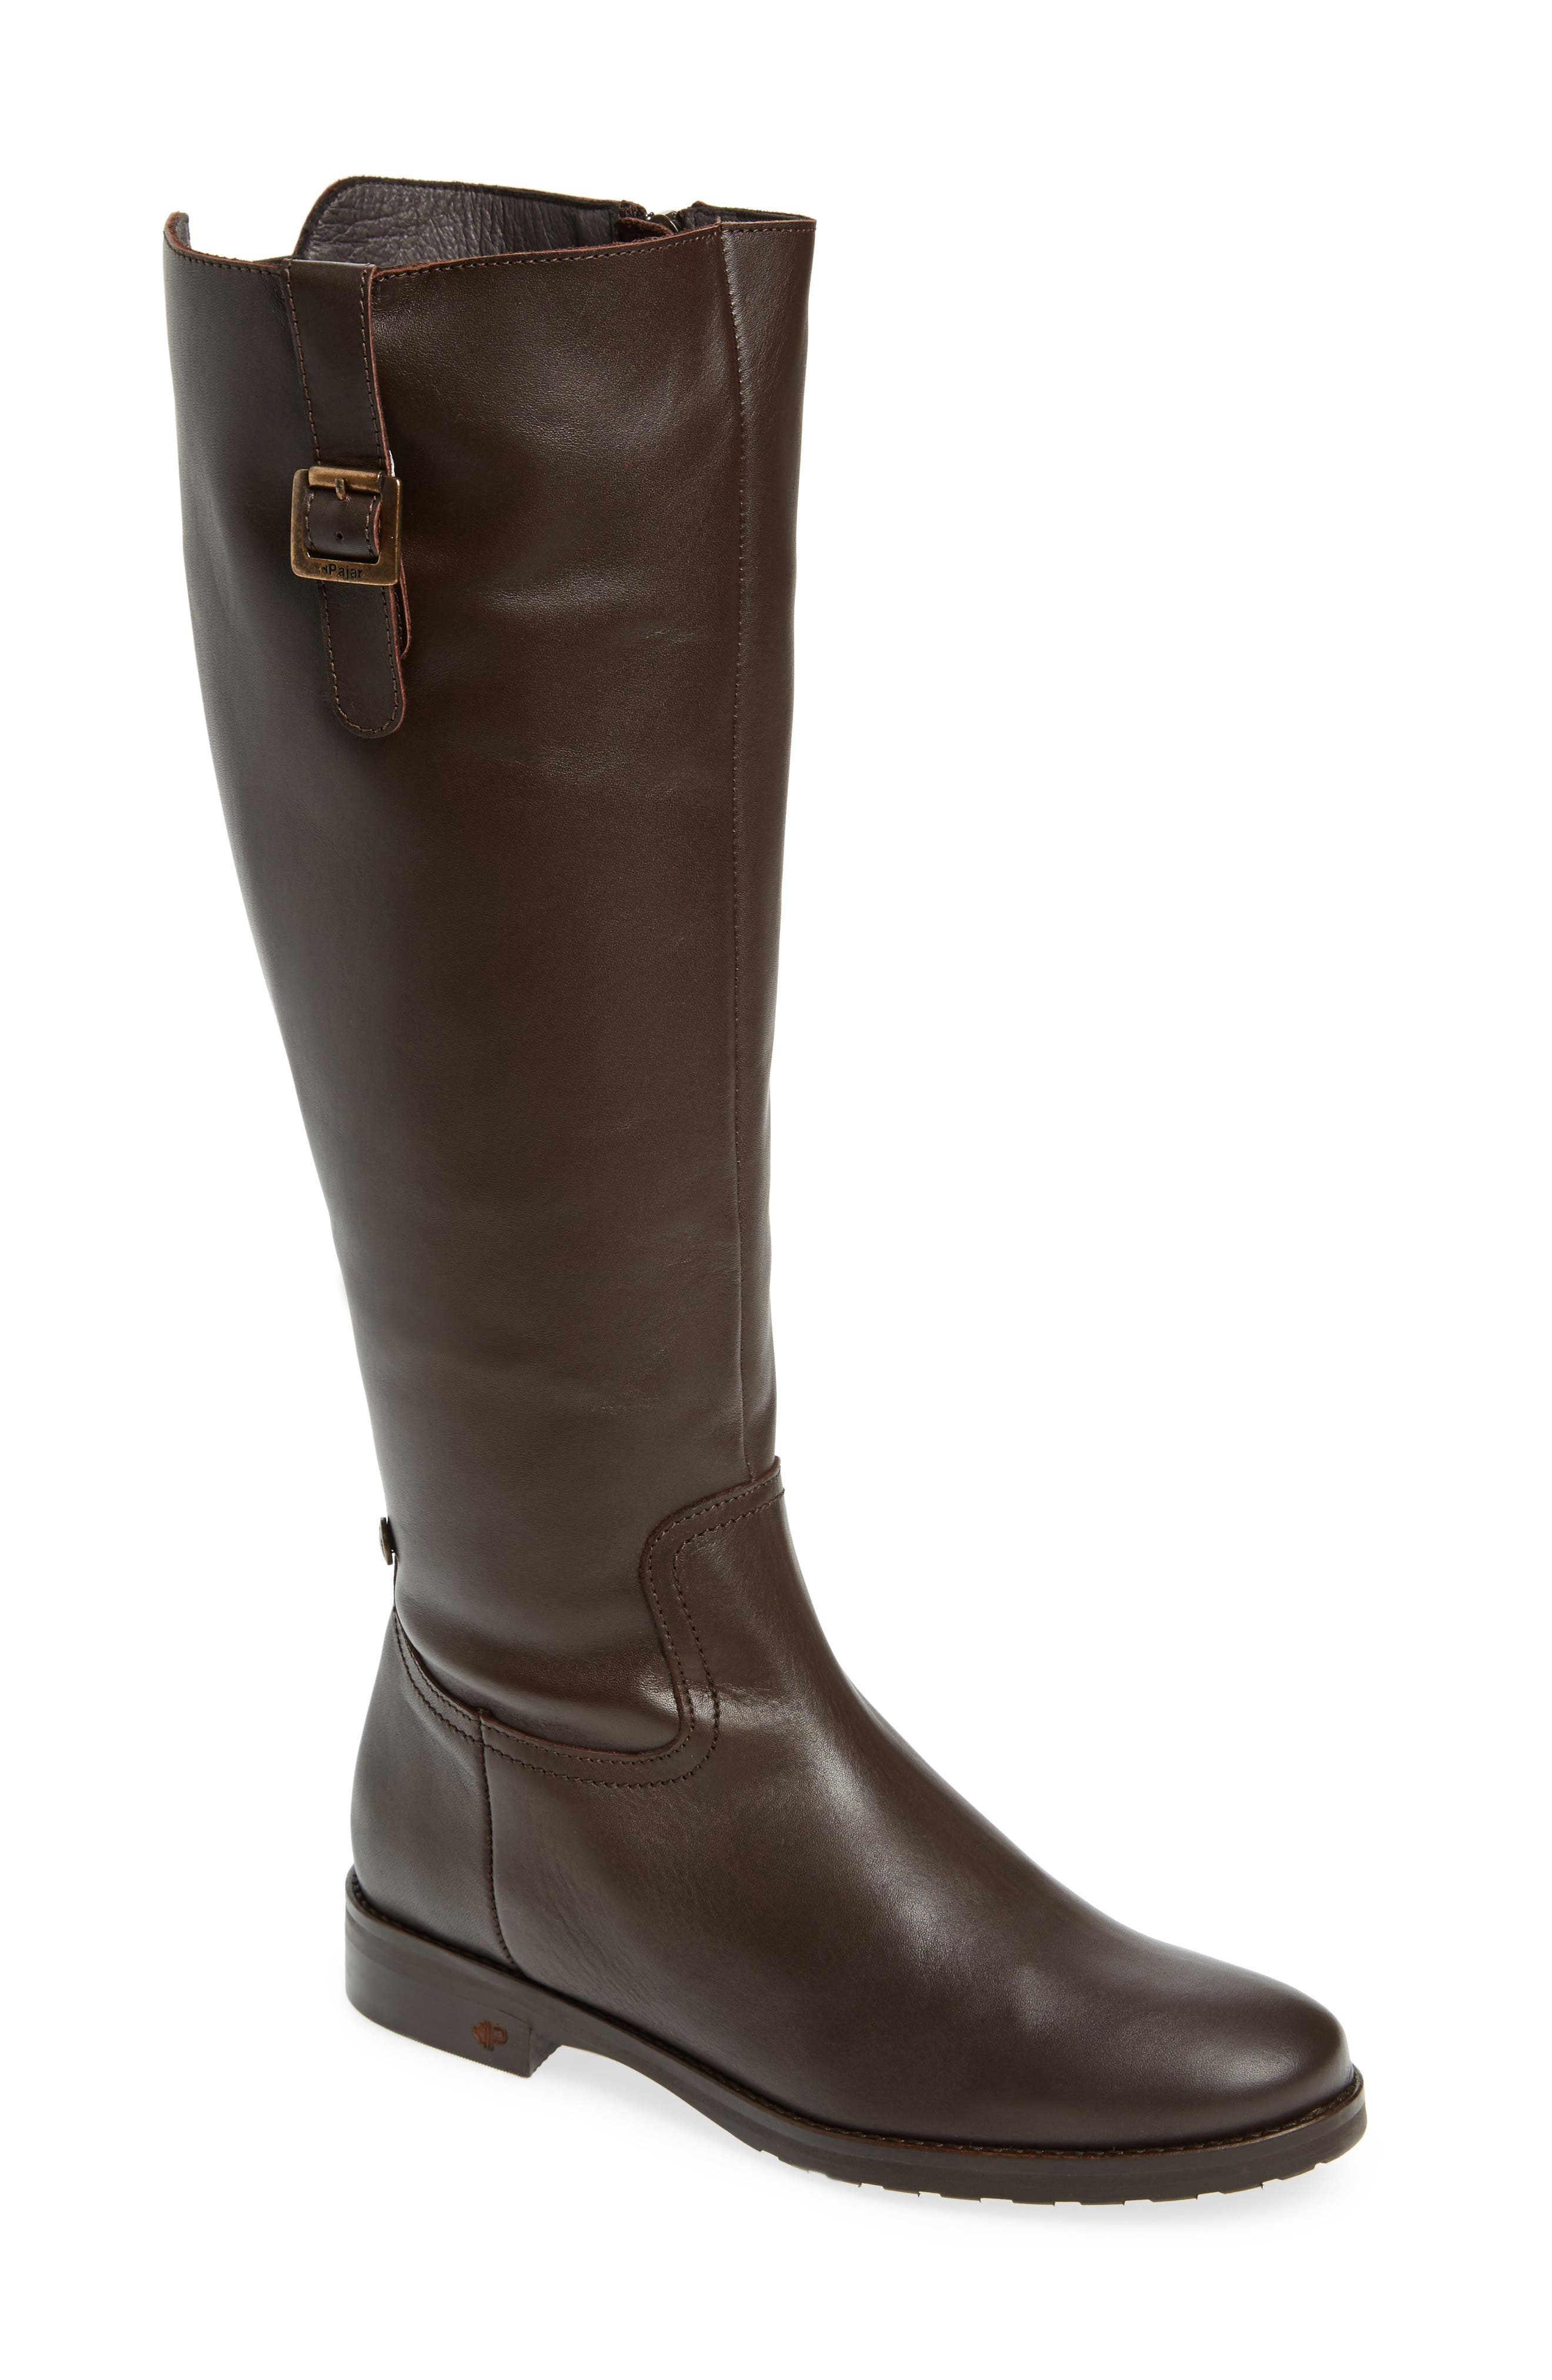 Anson Waterproof Boot,                             Main thumbnail 1, color,                             Brown Leather